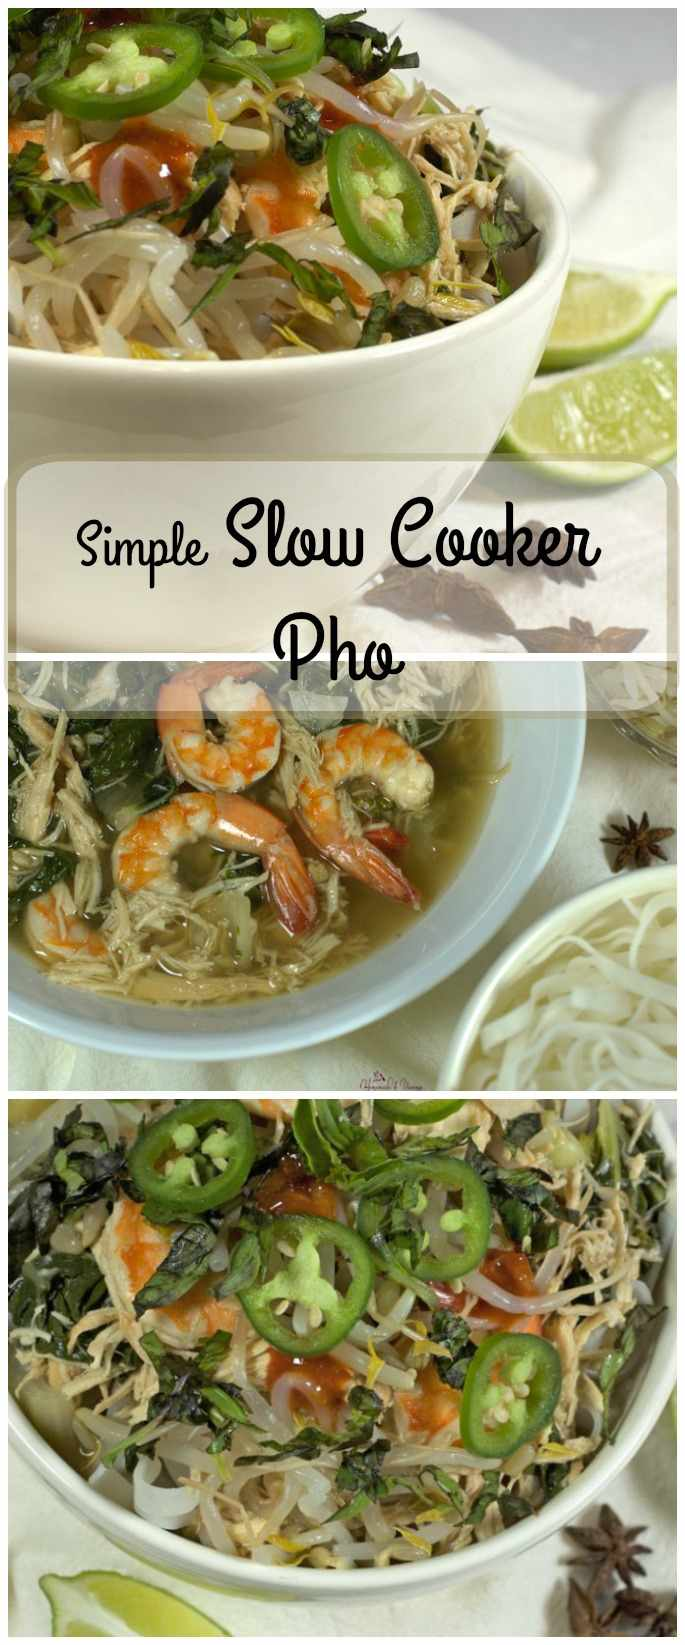 Simple Slow Cooker Pho long pin image.